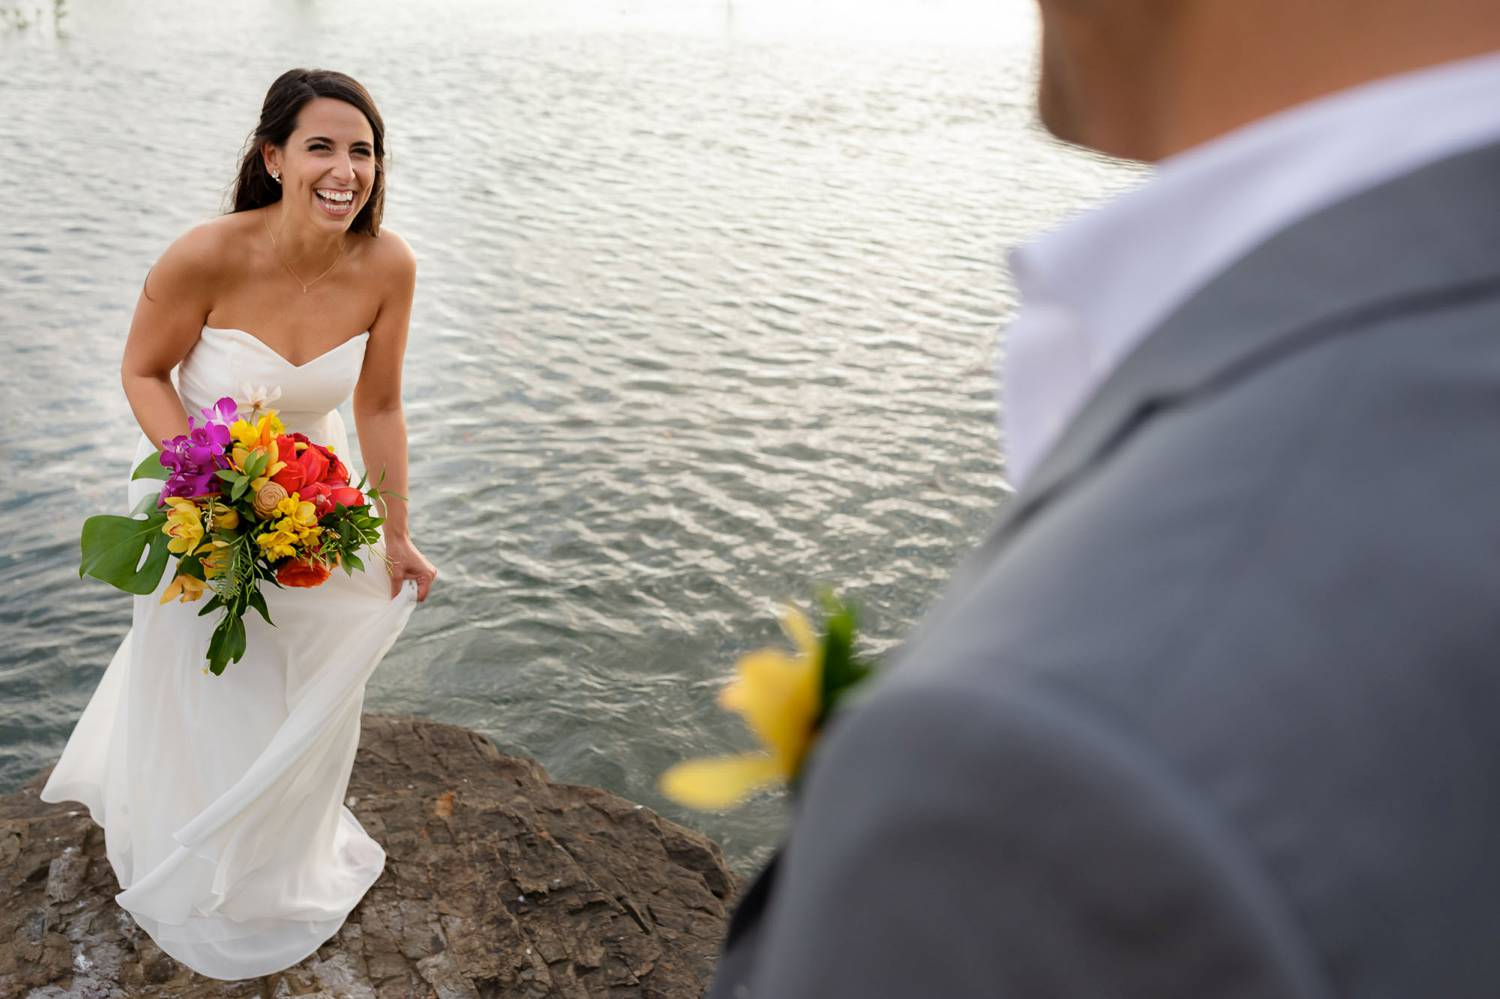 Client Experience: A photo by Kevin Heslin depicts a bride as she approaches her groom during their first look on a beach.